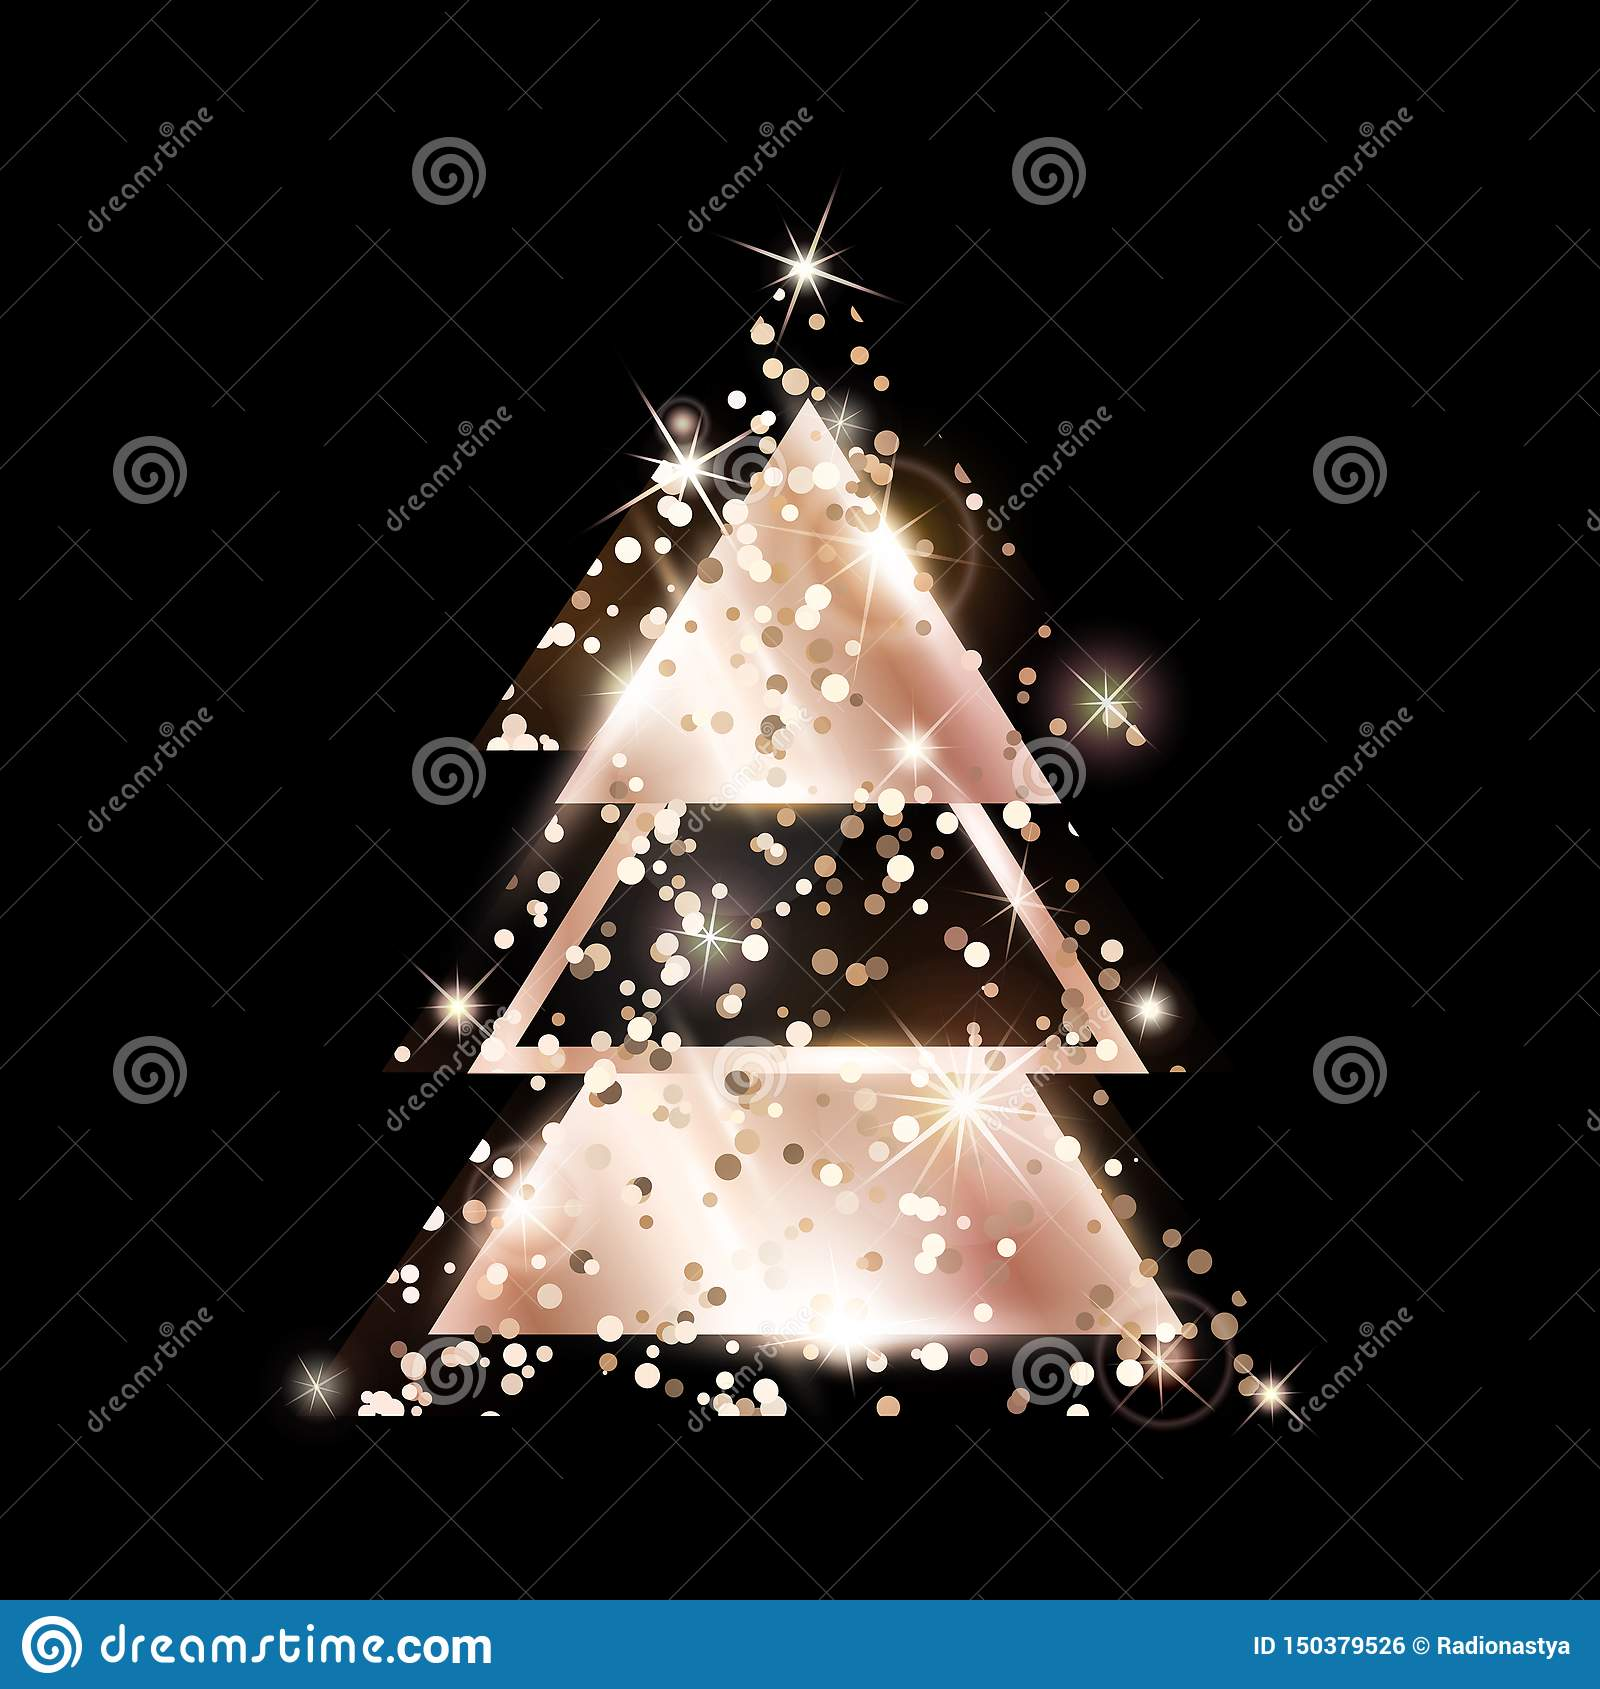 A Geometric Christmas Tree Rose Gold Glitter Stock Vector Illustration Of Glow Glitter 150379526